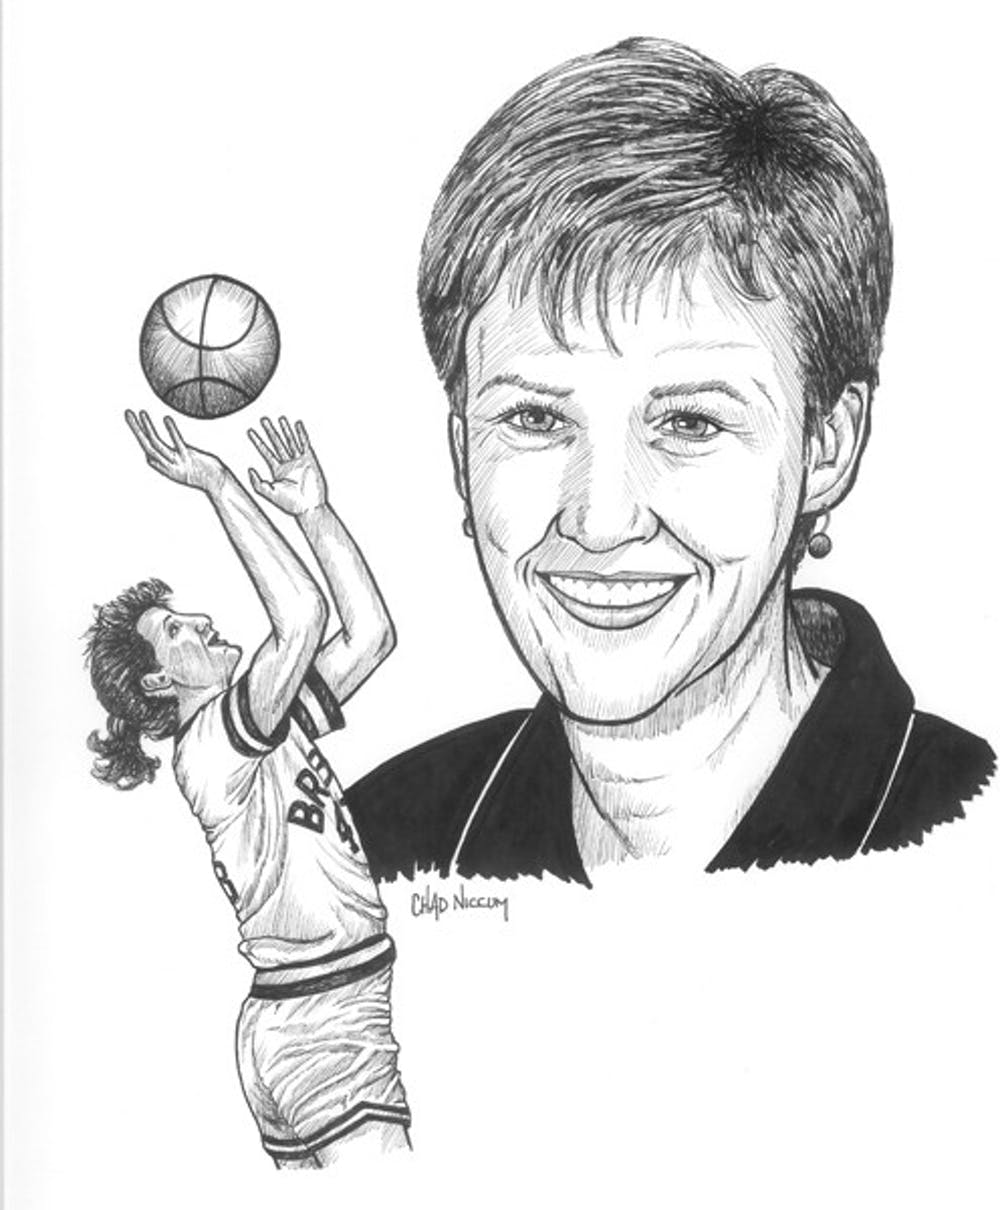 <p>Ellen DeVoe '86.</p> <h6>Photo courtesy of the Indiana Basketball Hall of Fame</h6>